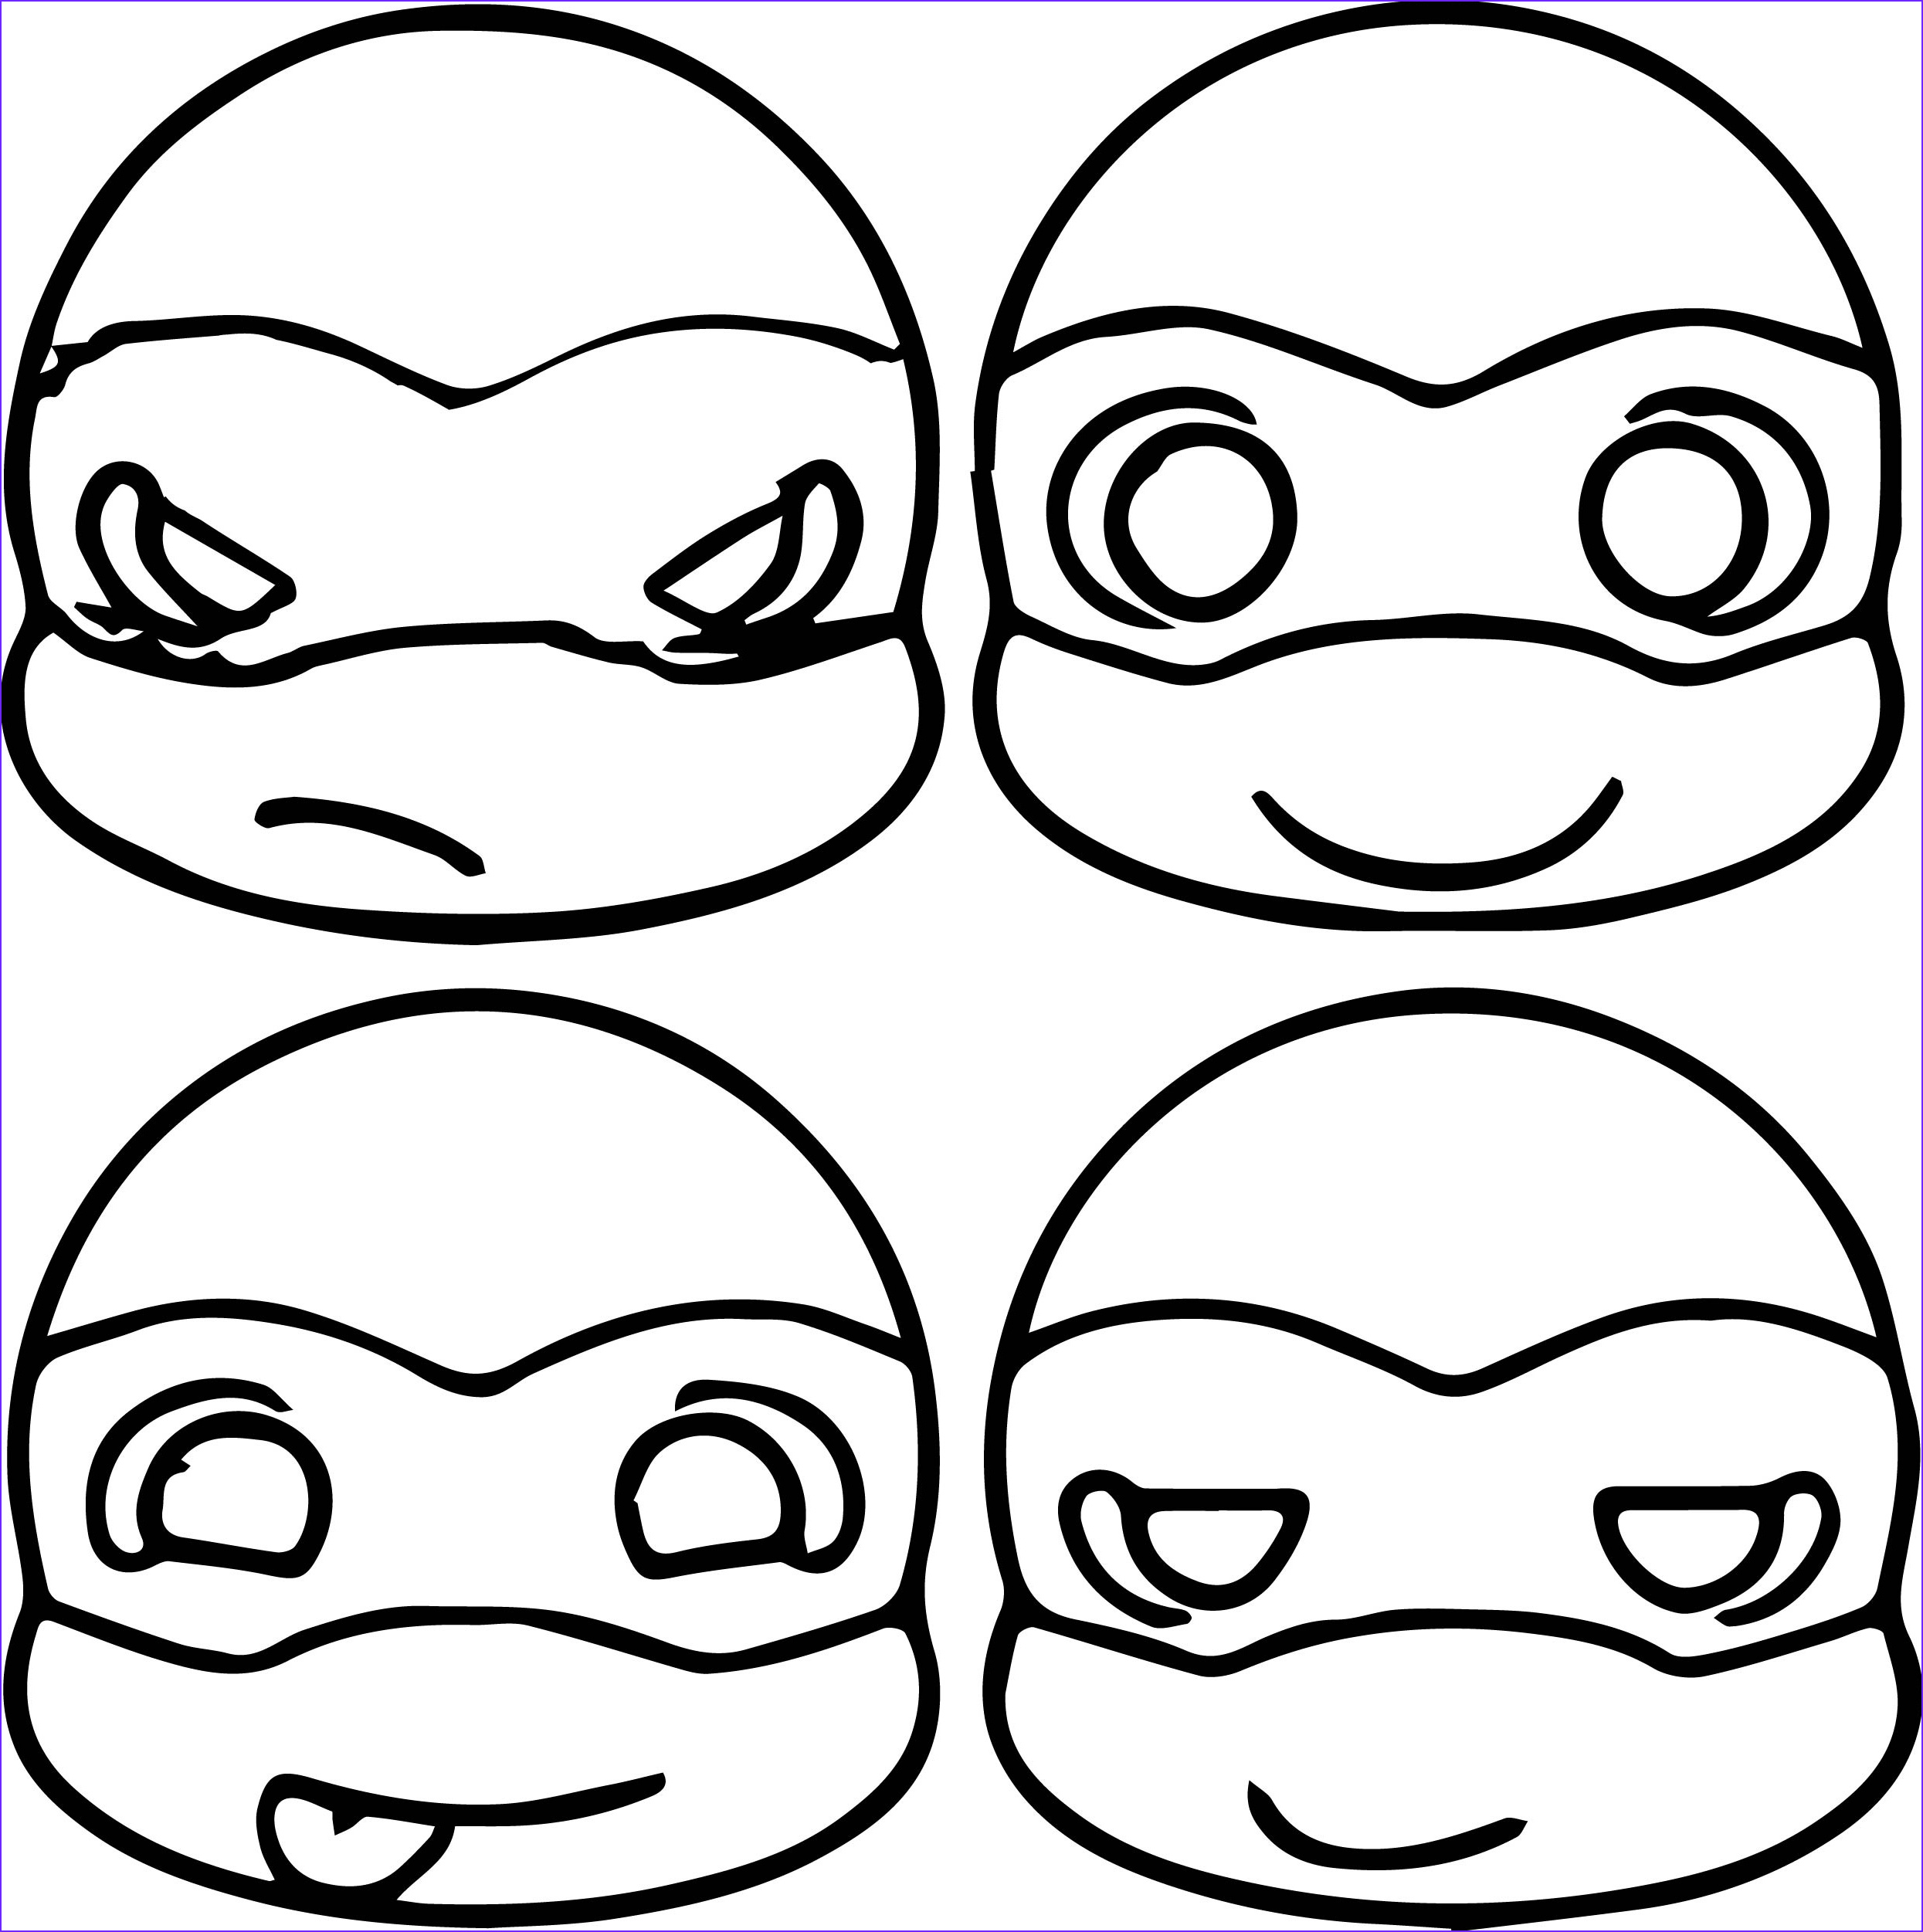 Ninja Turtle Coloring Pictures Best Of Photos Teenage Mutant Ninja Turtles Coloring Pages Best